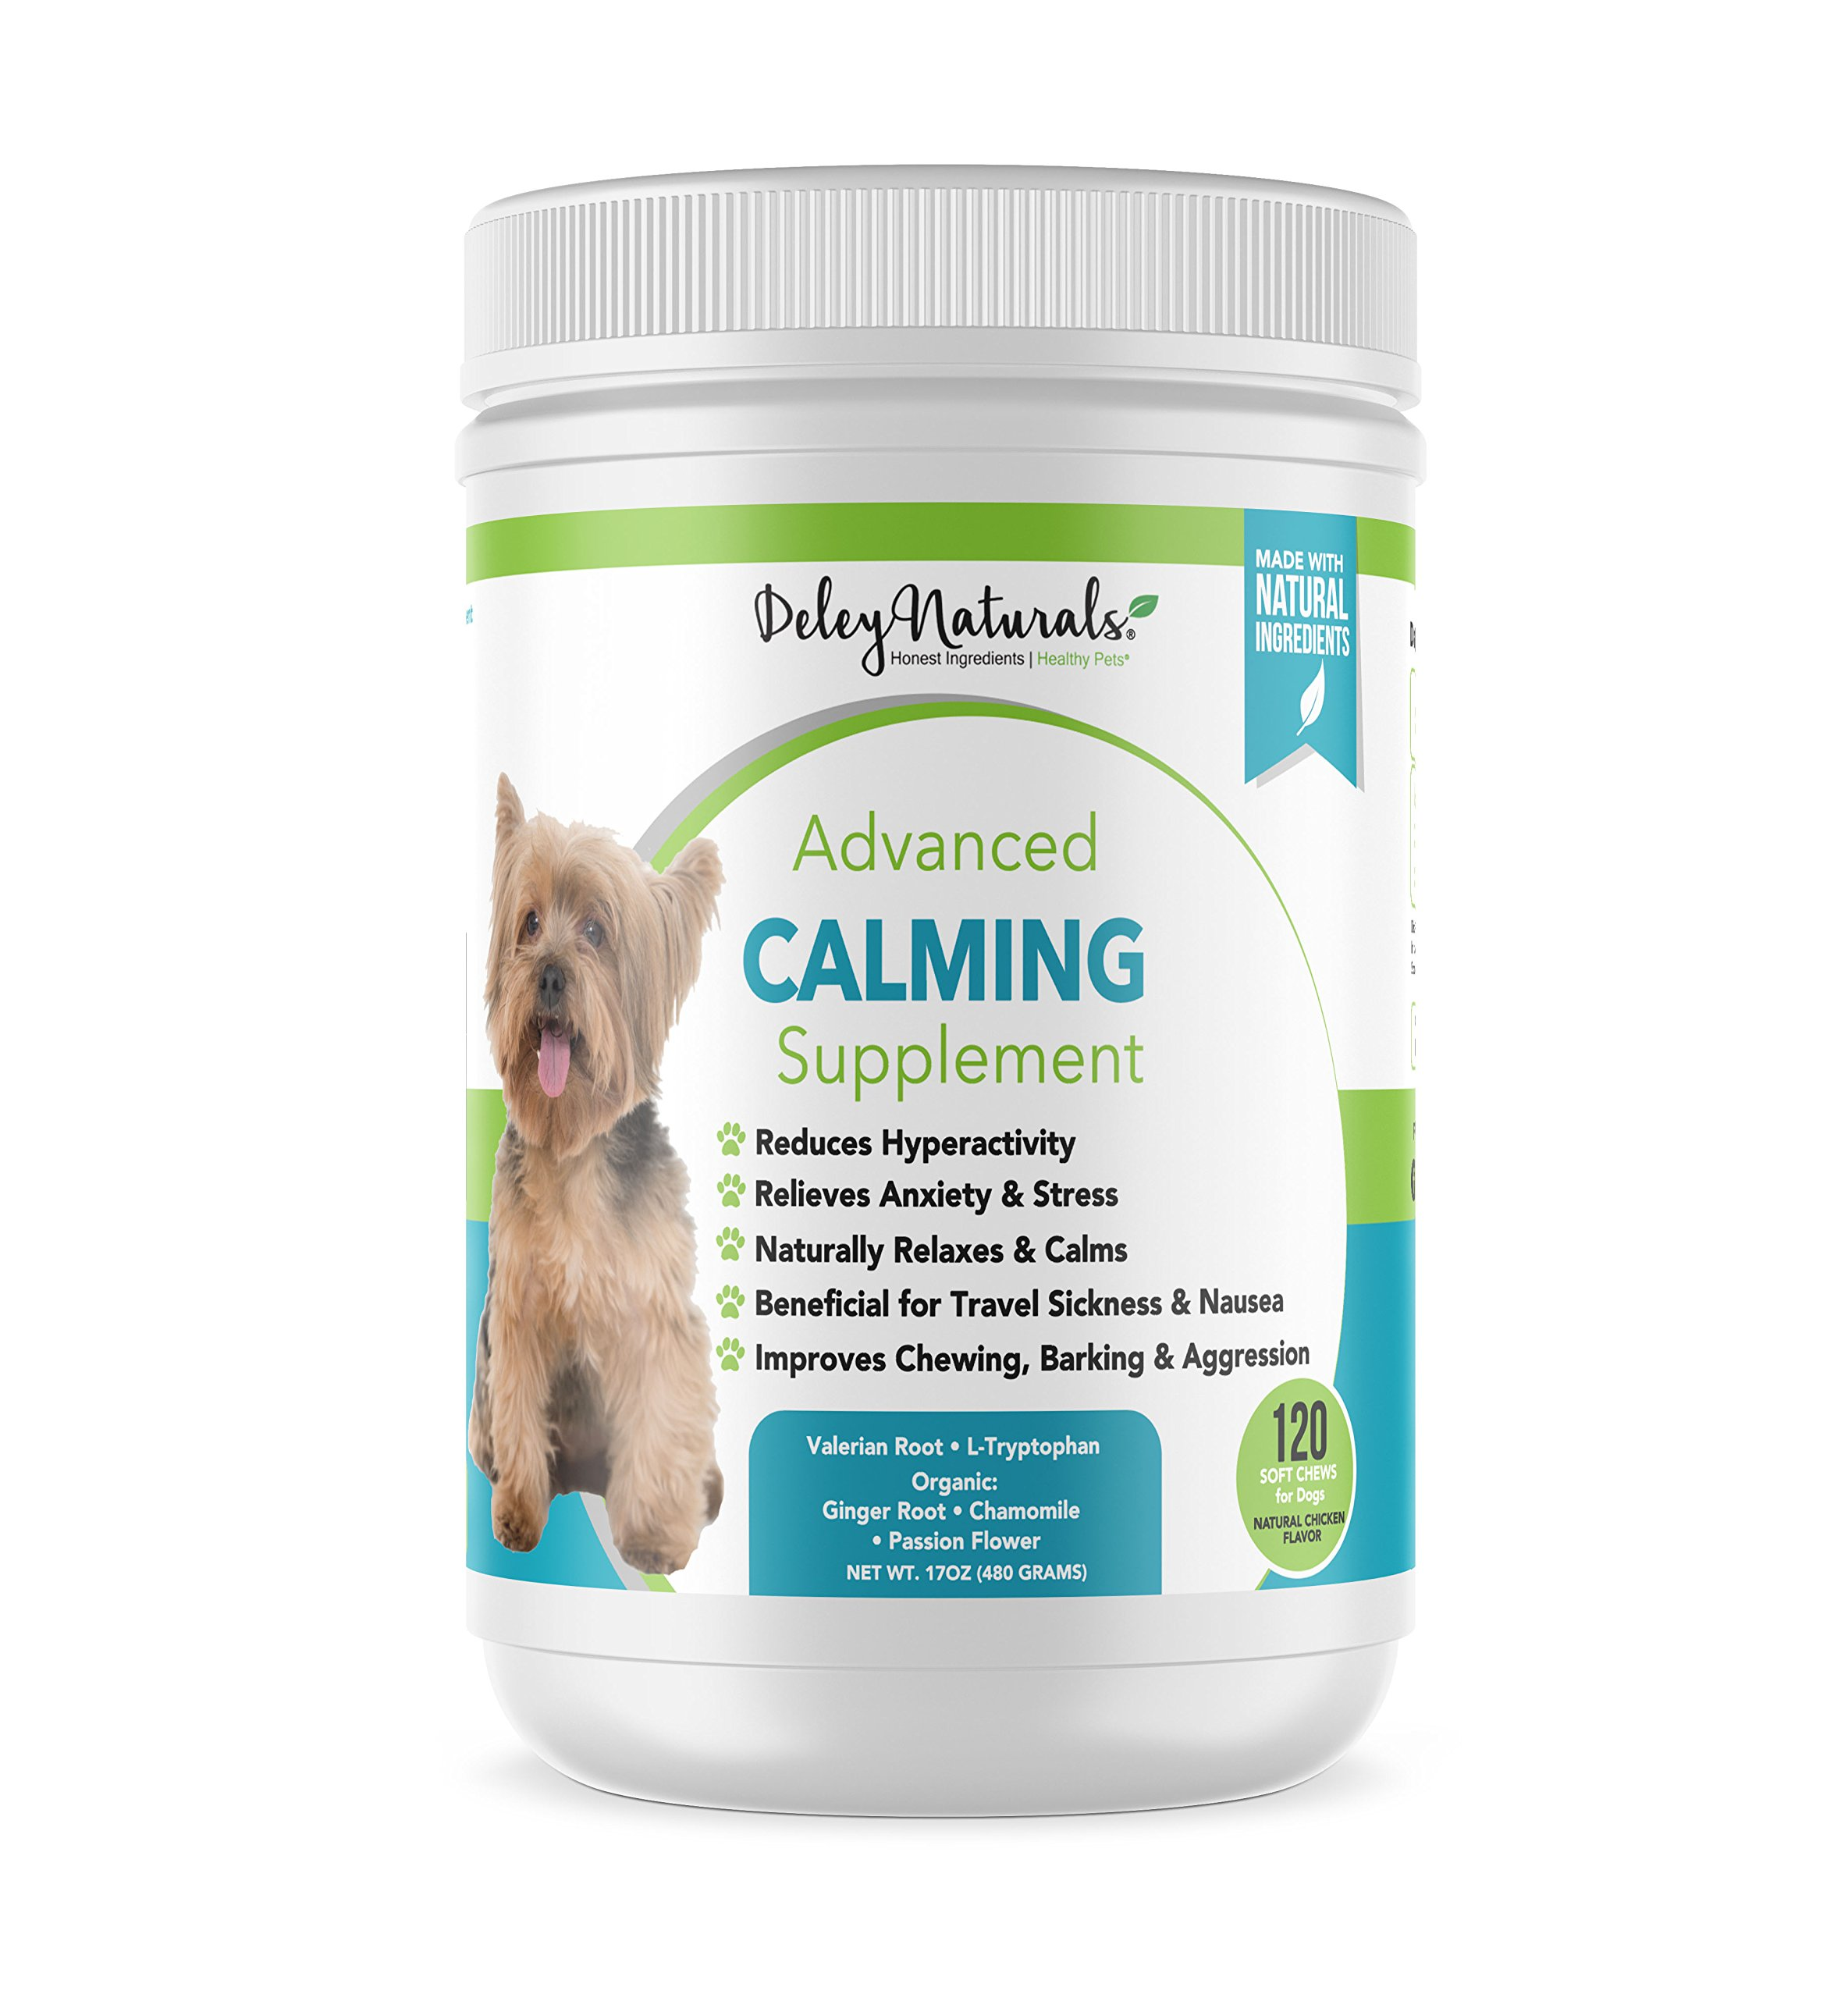 Daily Anxiety Support for Dogs - Separation Anxiety for Dogs, Travel, Groomers, Fireworks & Barking - Valerian Root and L-Tryptophan - Made in USA, All Natural, Grain Free - 120 Chicken Soft Chews by Deley Naturals